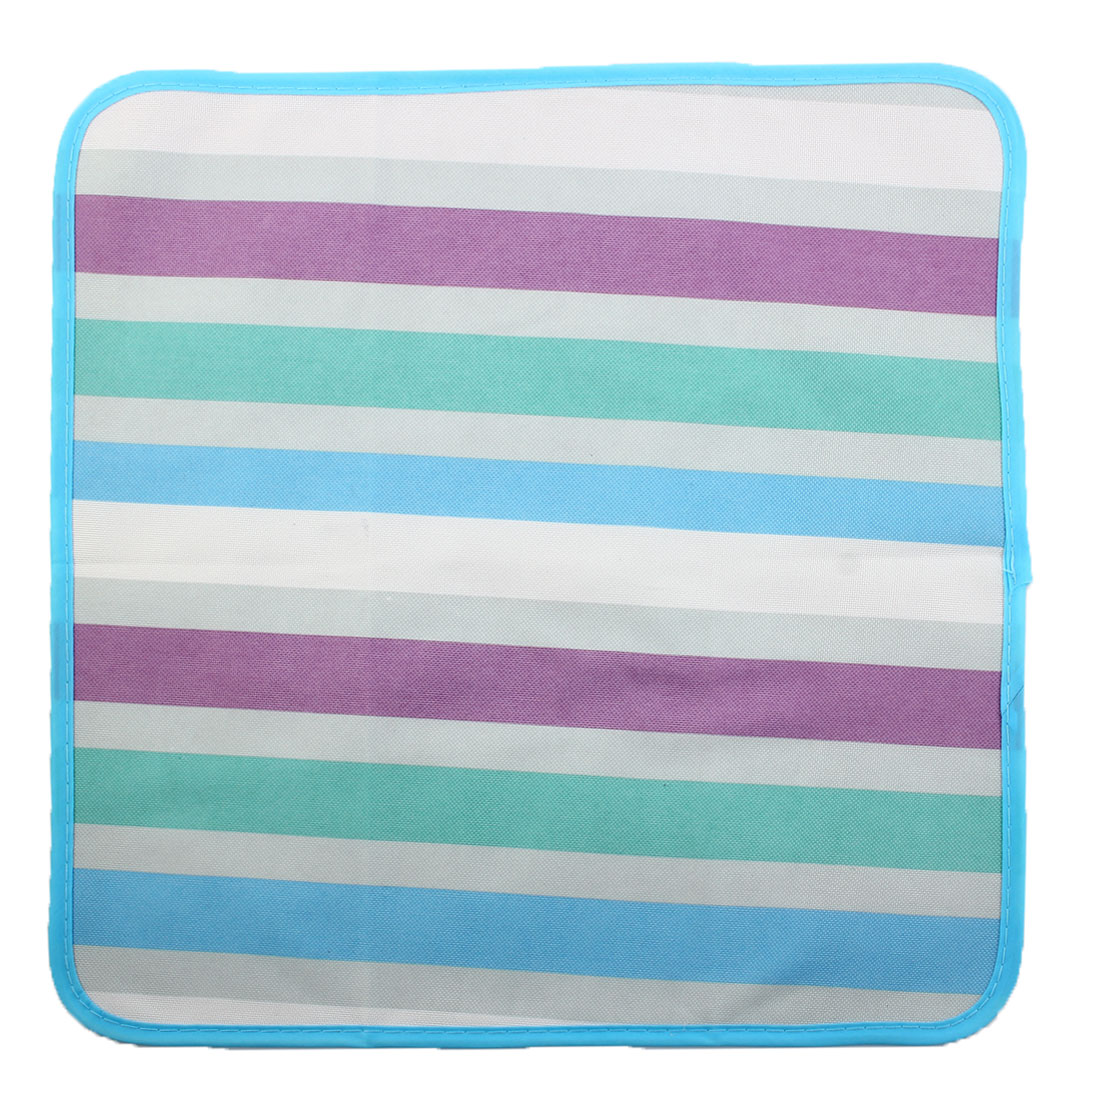 Outdoor Travel Stripe Print Water Resistant Picnic Blanket Foldable Camping Pad